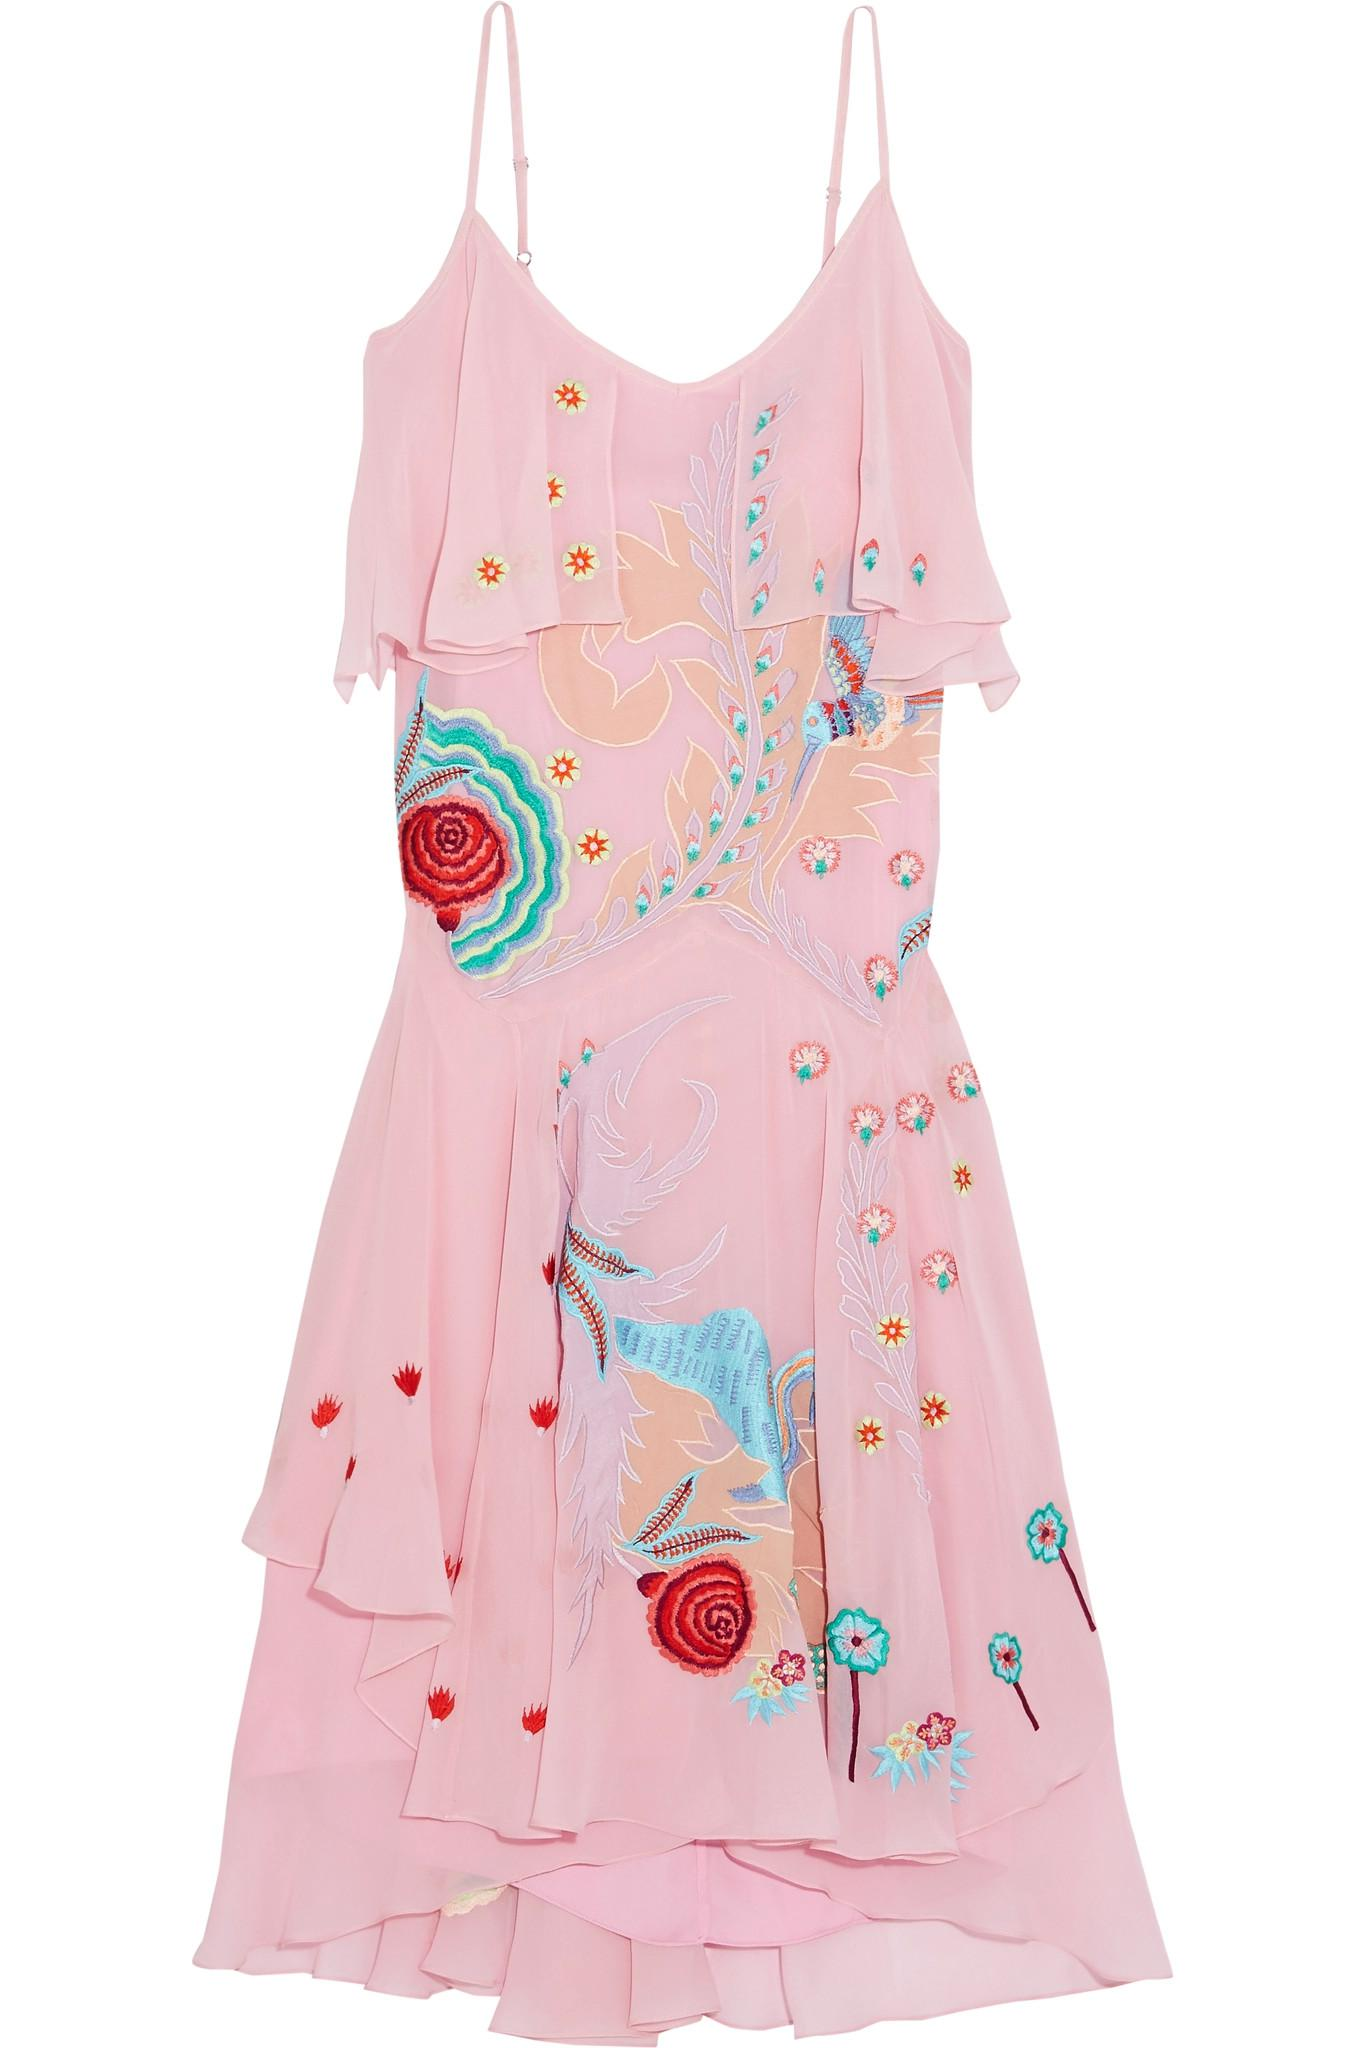 Buy Cheap 2018 Newest Temperley London Woman Chimera Embroidered Silk-crepe Midi Dress Pink Size 10 Temperley London Shipping Discount Sale Sale Low Price VofTKd1e